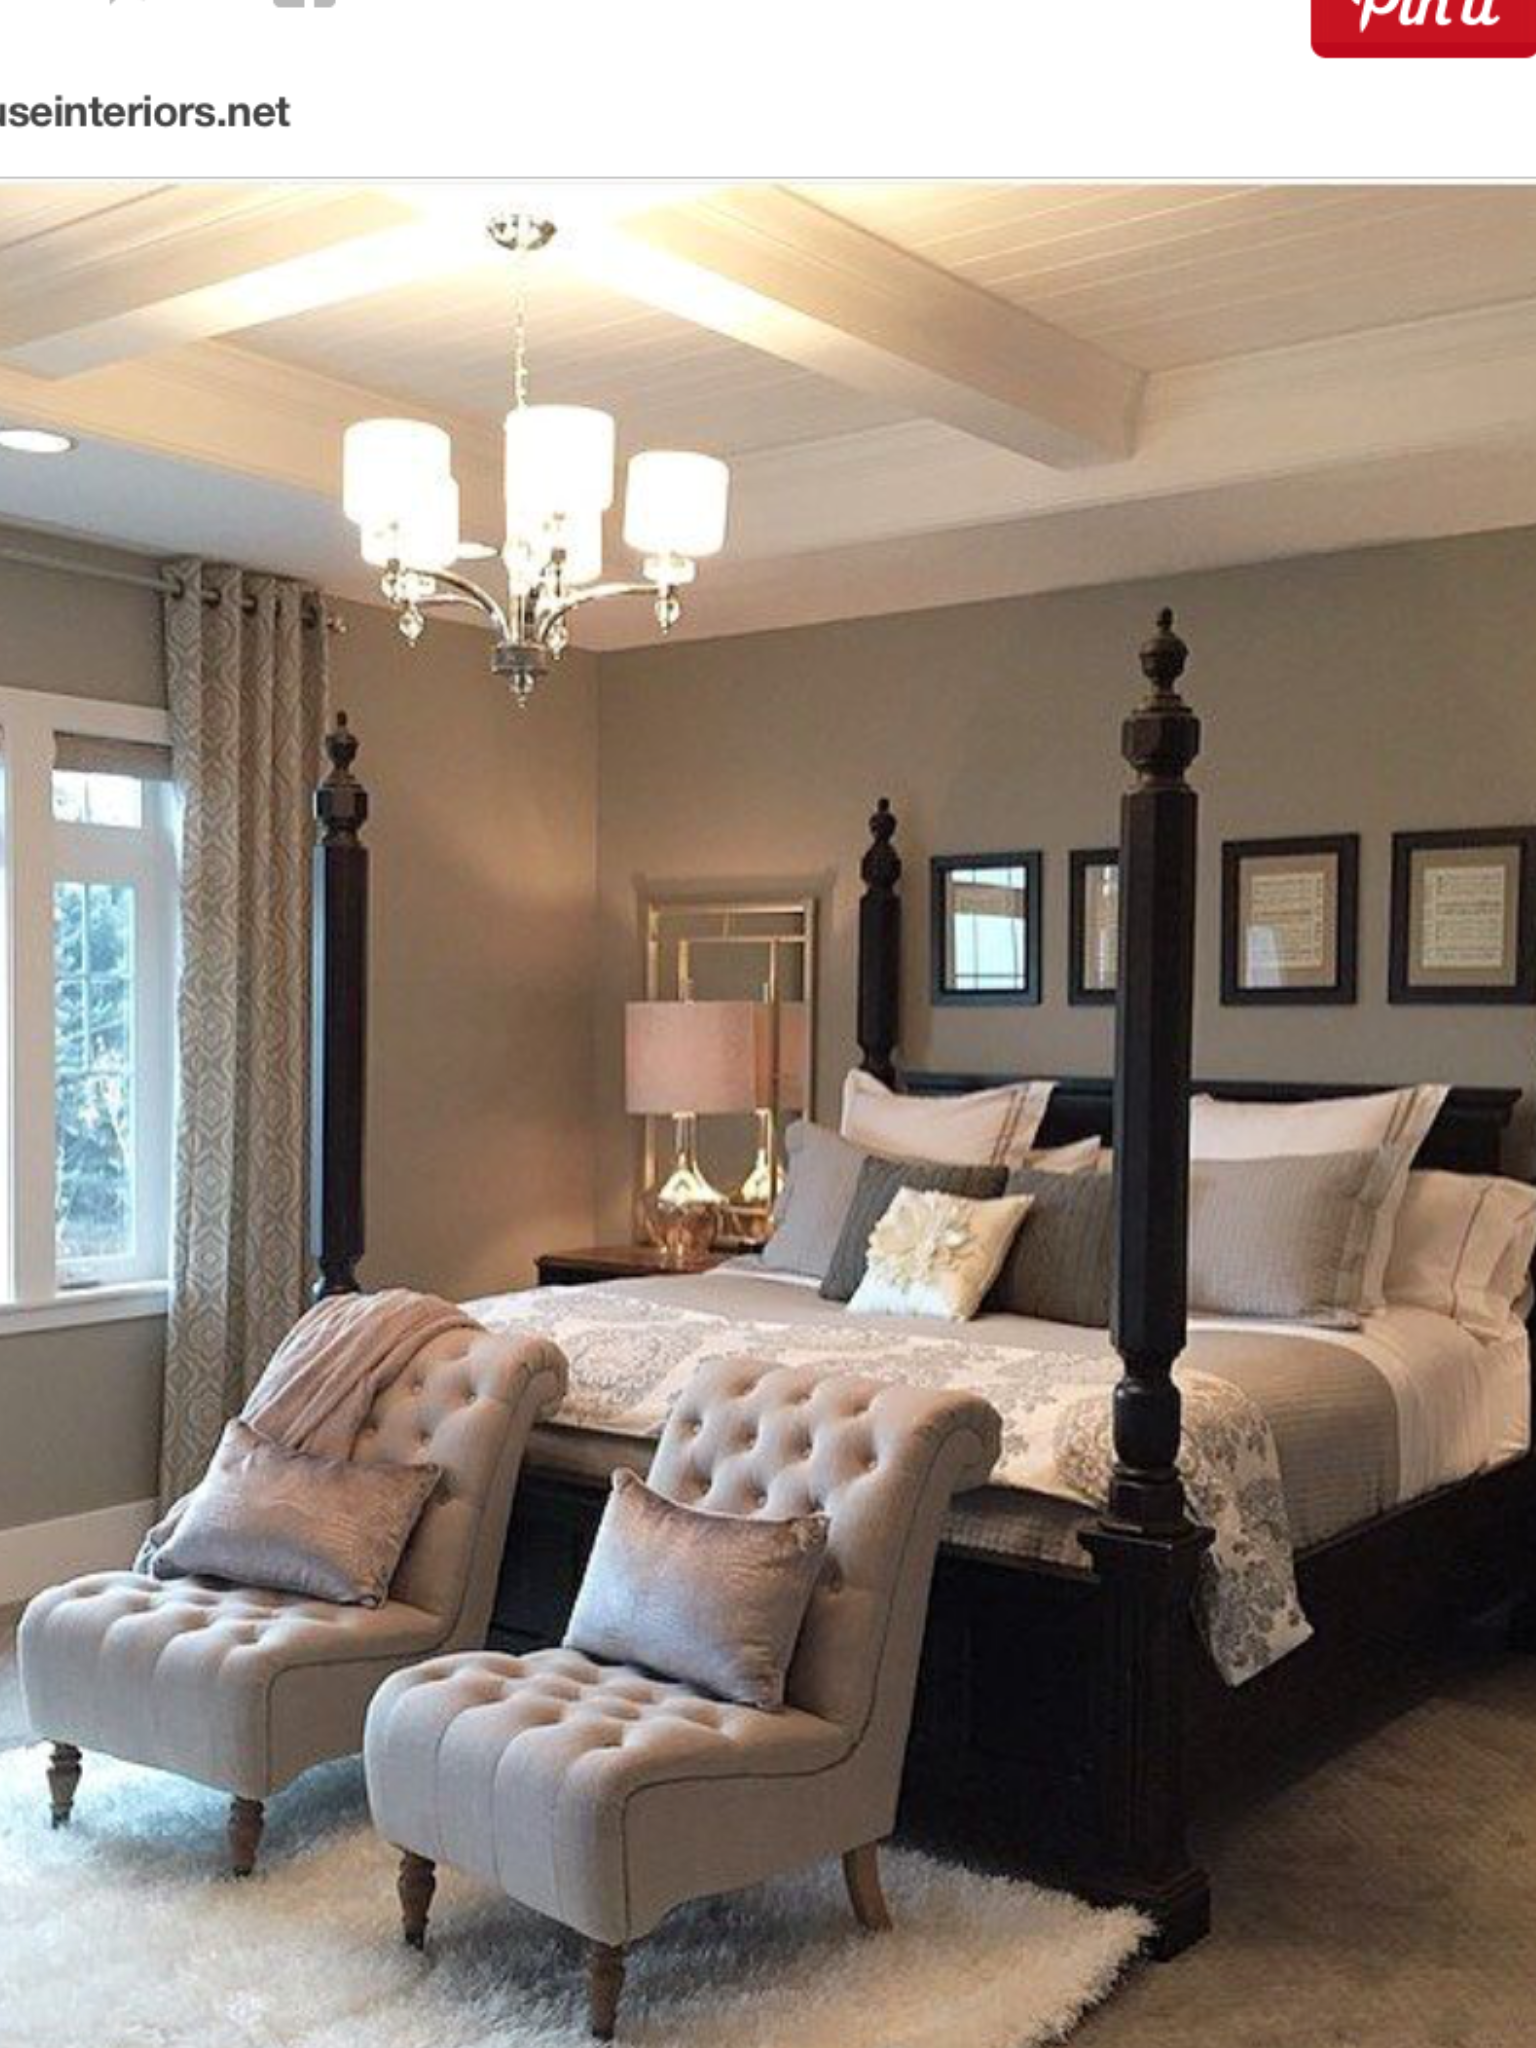 Unique 30 black and beige bedroom decor decorating design for Black and beige bedroom ideas